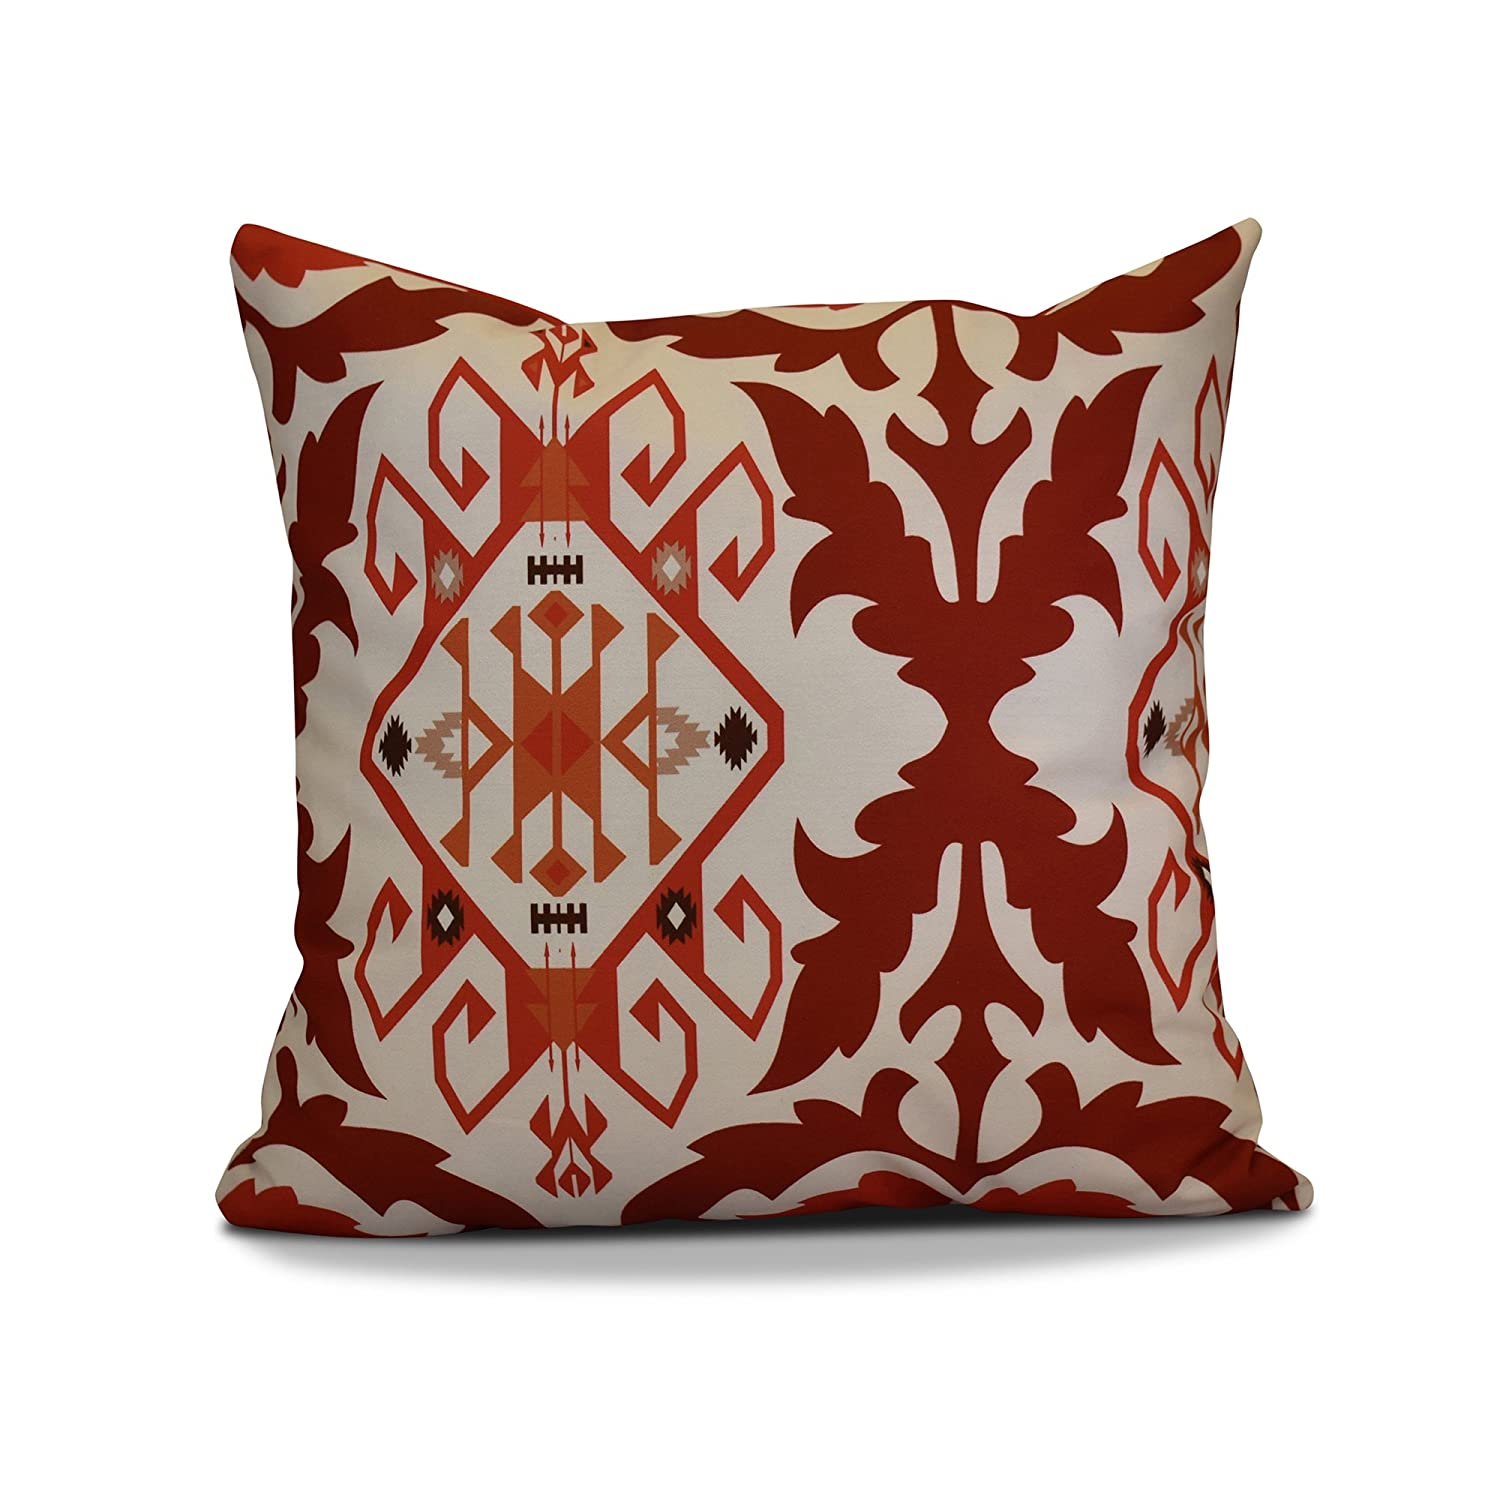 E by design PGN730OR11-20 20 x 20-inch Geometric Print Pillow 20x20 Red Bombay 6